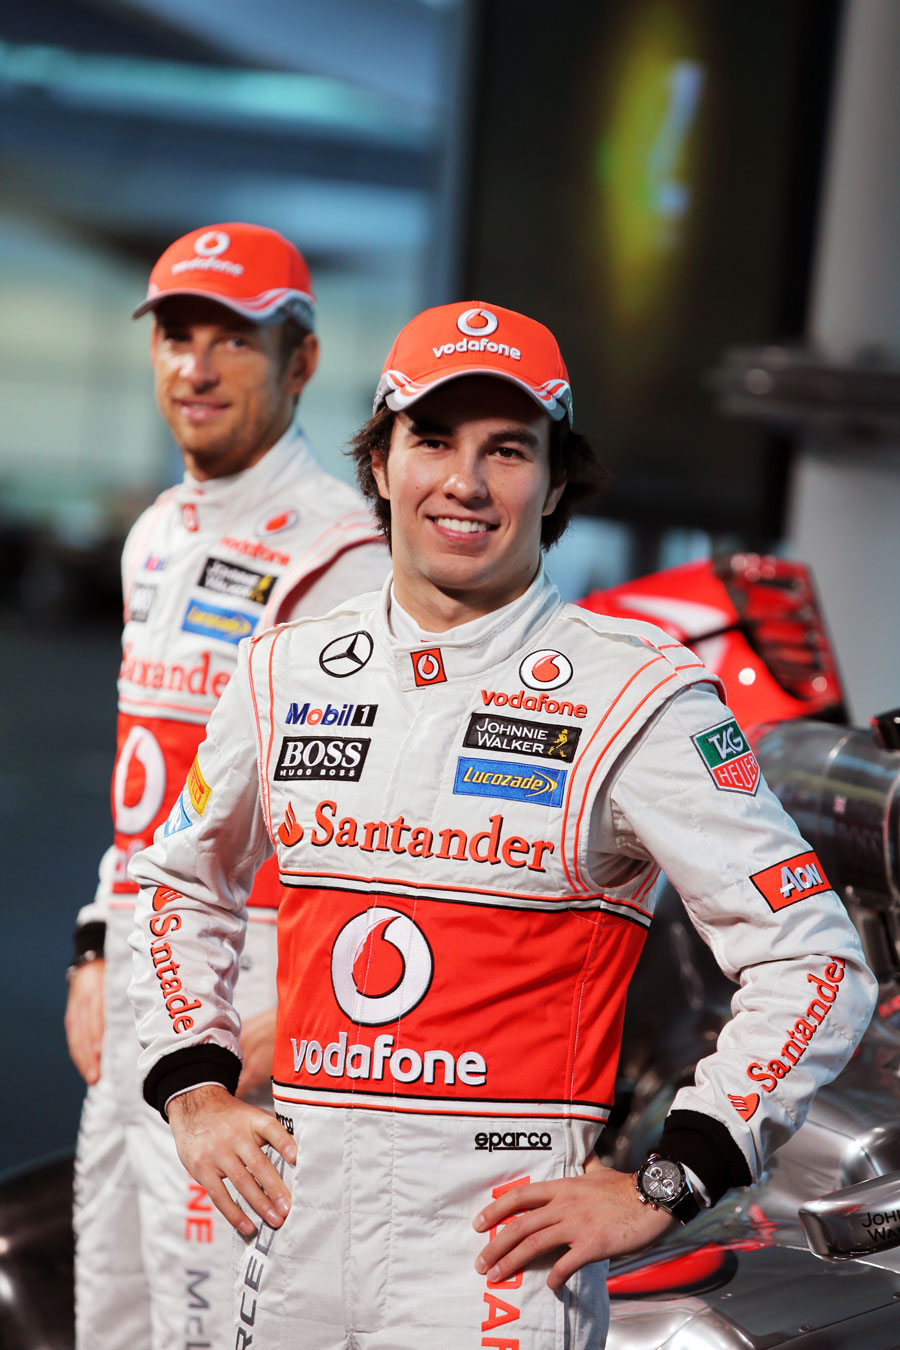 Sergio Perez and Jenson Button at the launch of the new MP4-28